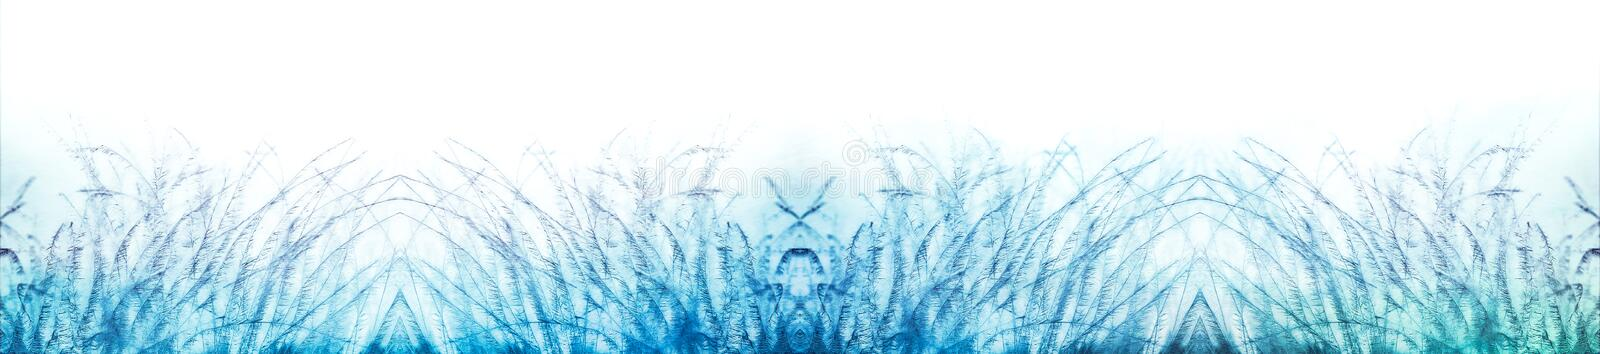 Pantone Turquoise Feathers on White Background Banner royalty free stock photo